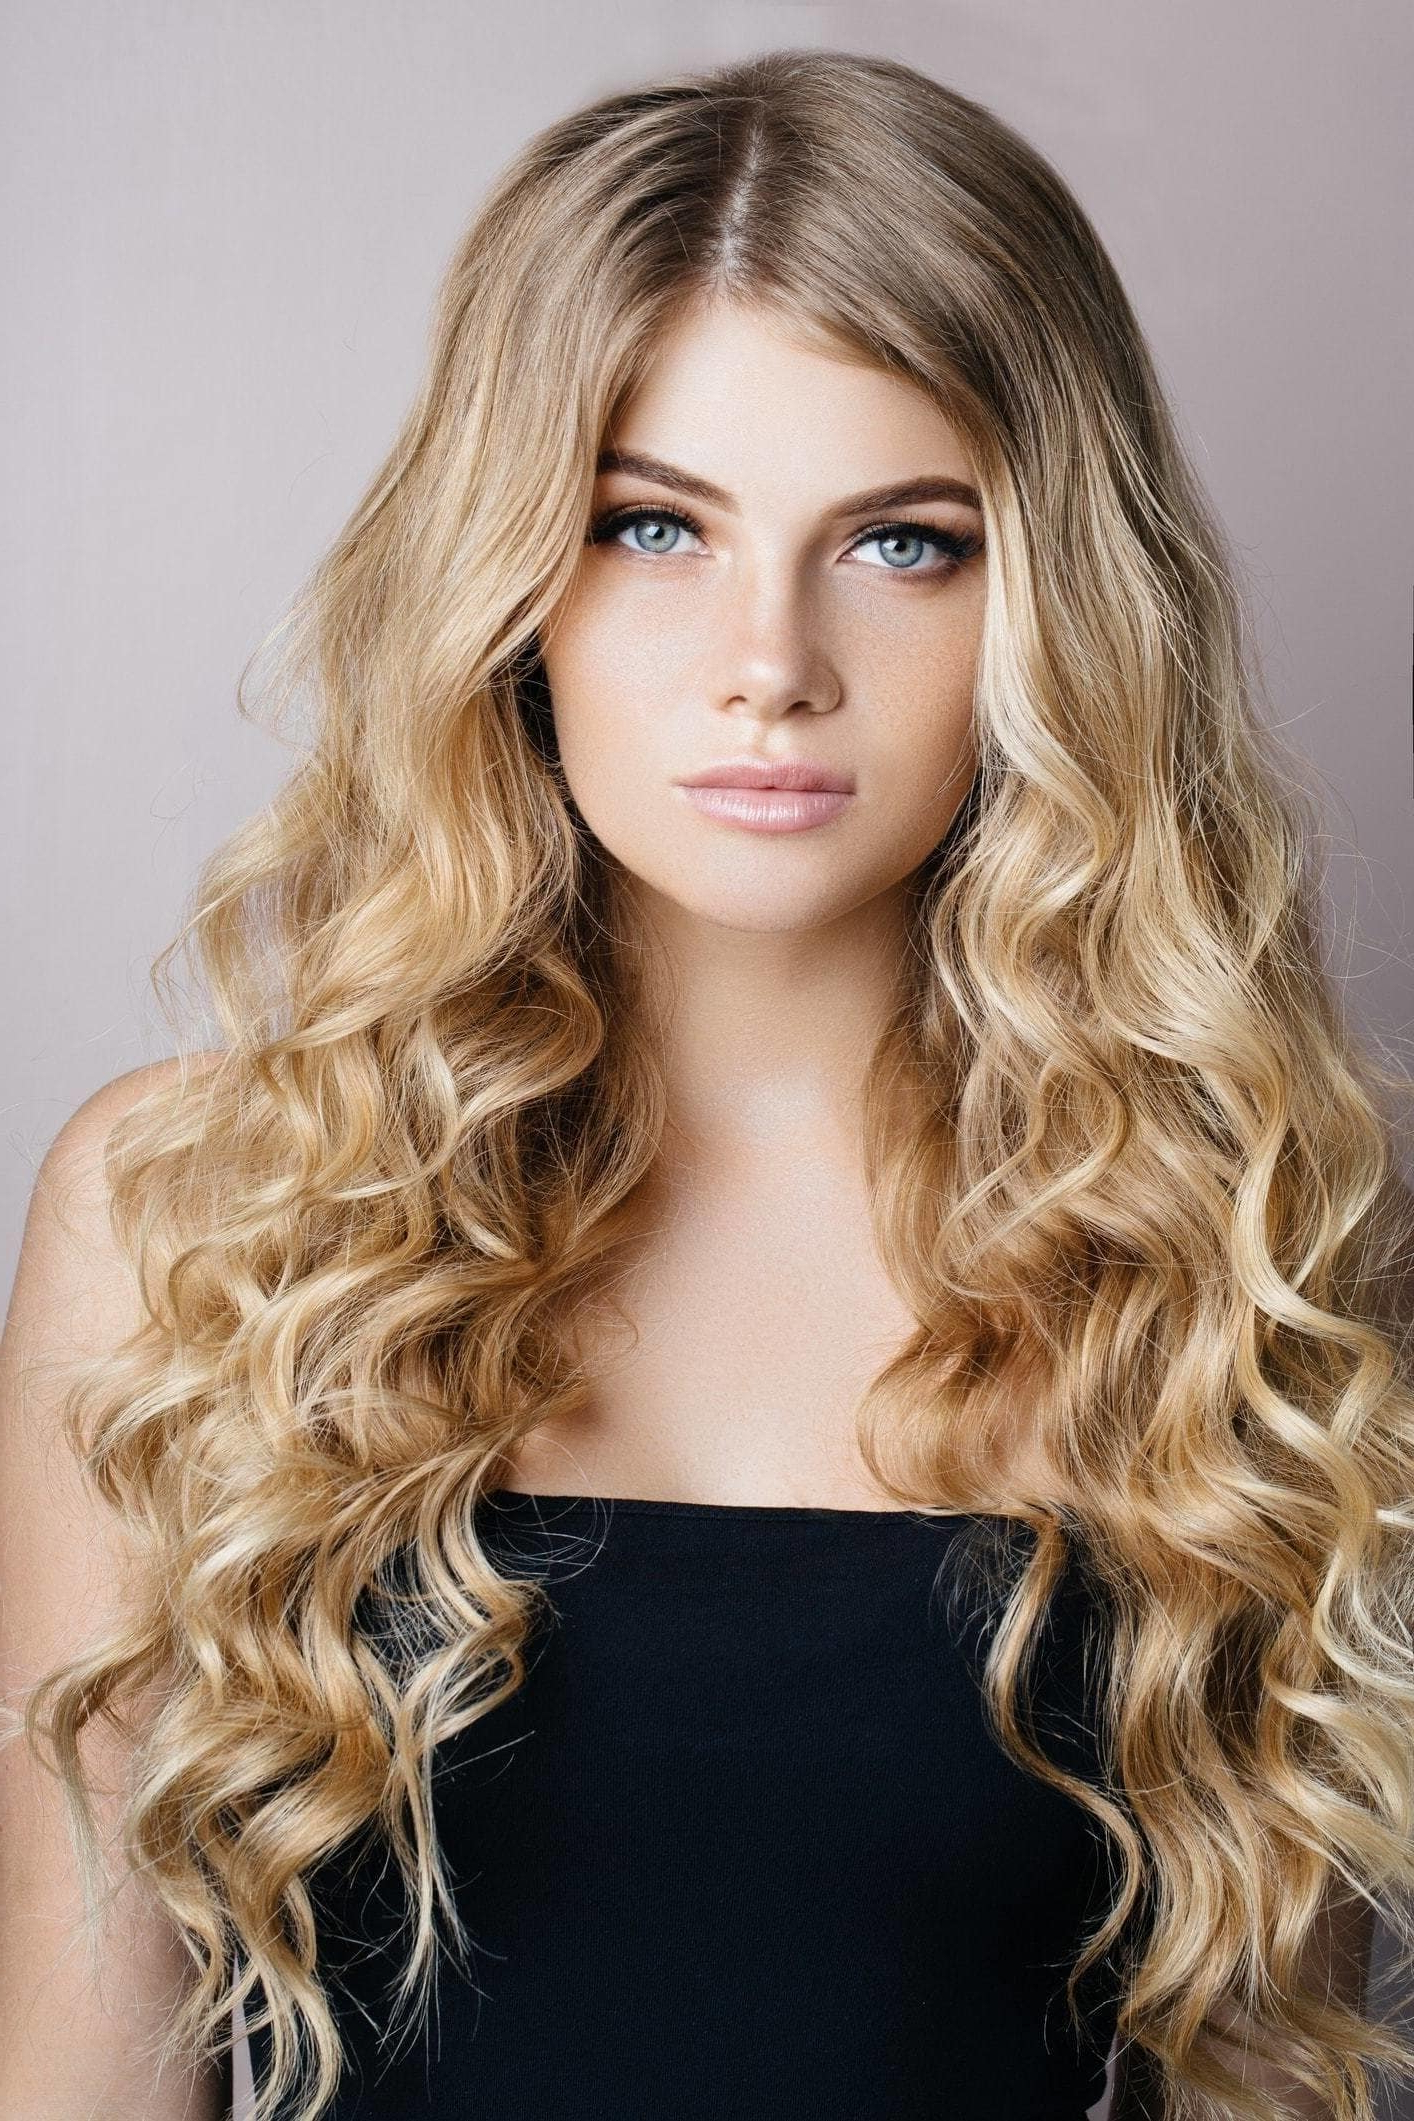 Long Curly Hairstyles: 25 Fabulous Looks To Love Throughout Playful Blonde Curls Hairstyles (Gallery 7 of 20)